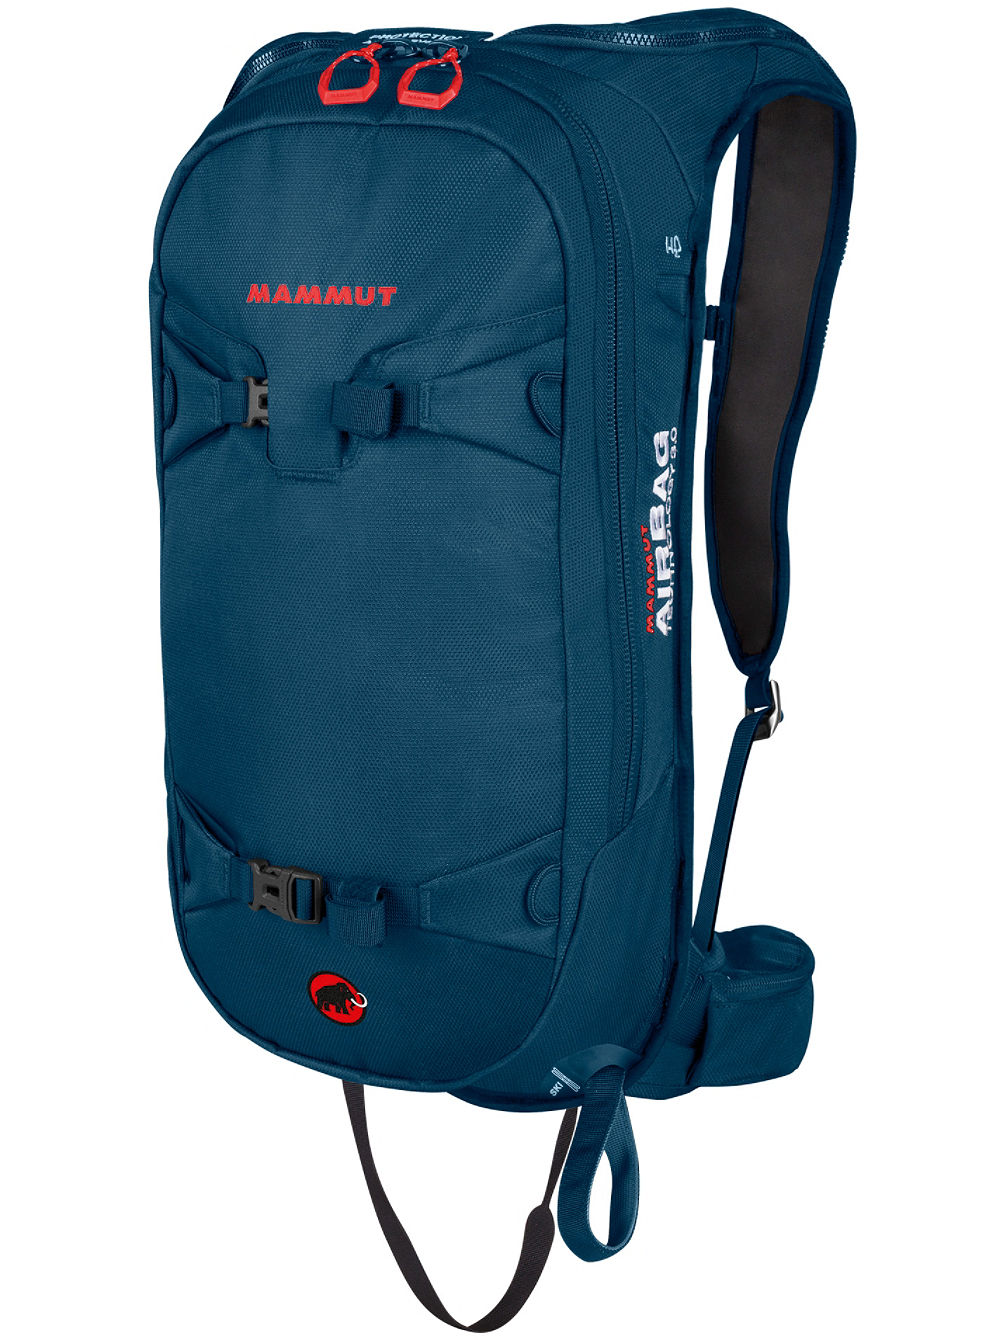 135dba50ae Buy Mammut Rocker Protection Airbag 3.0 Backpack online at blue-tomato.com